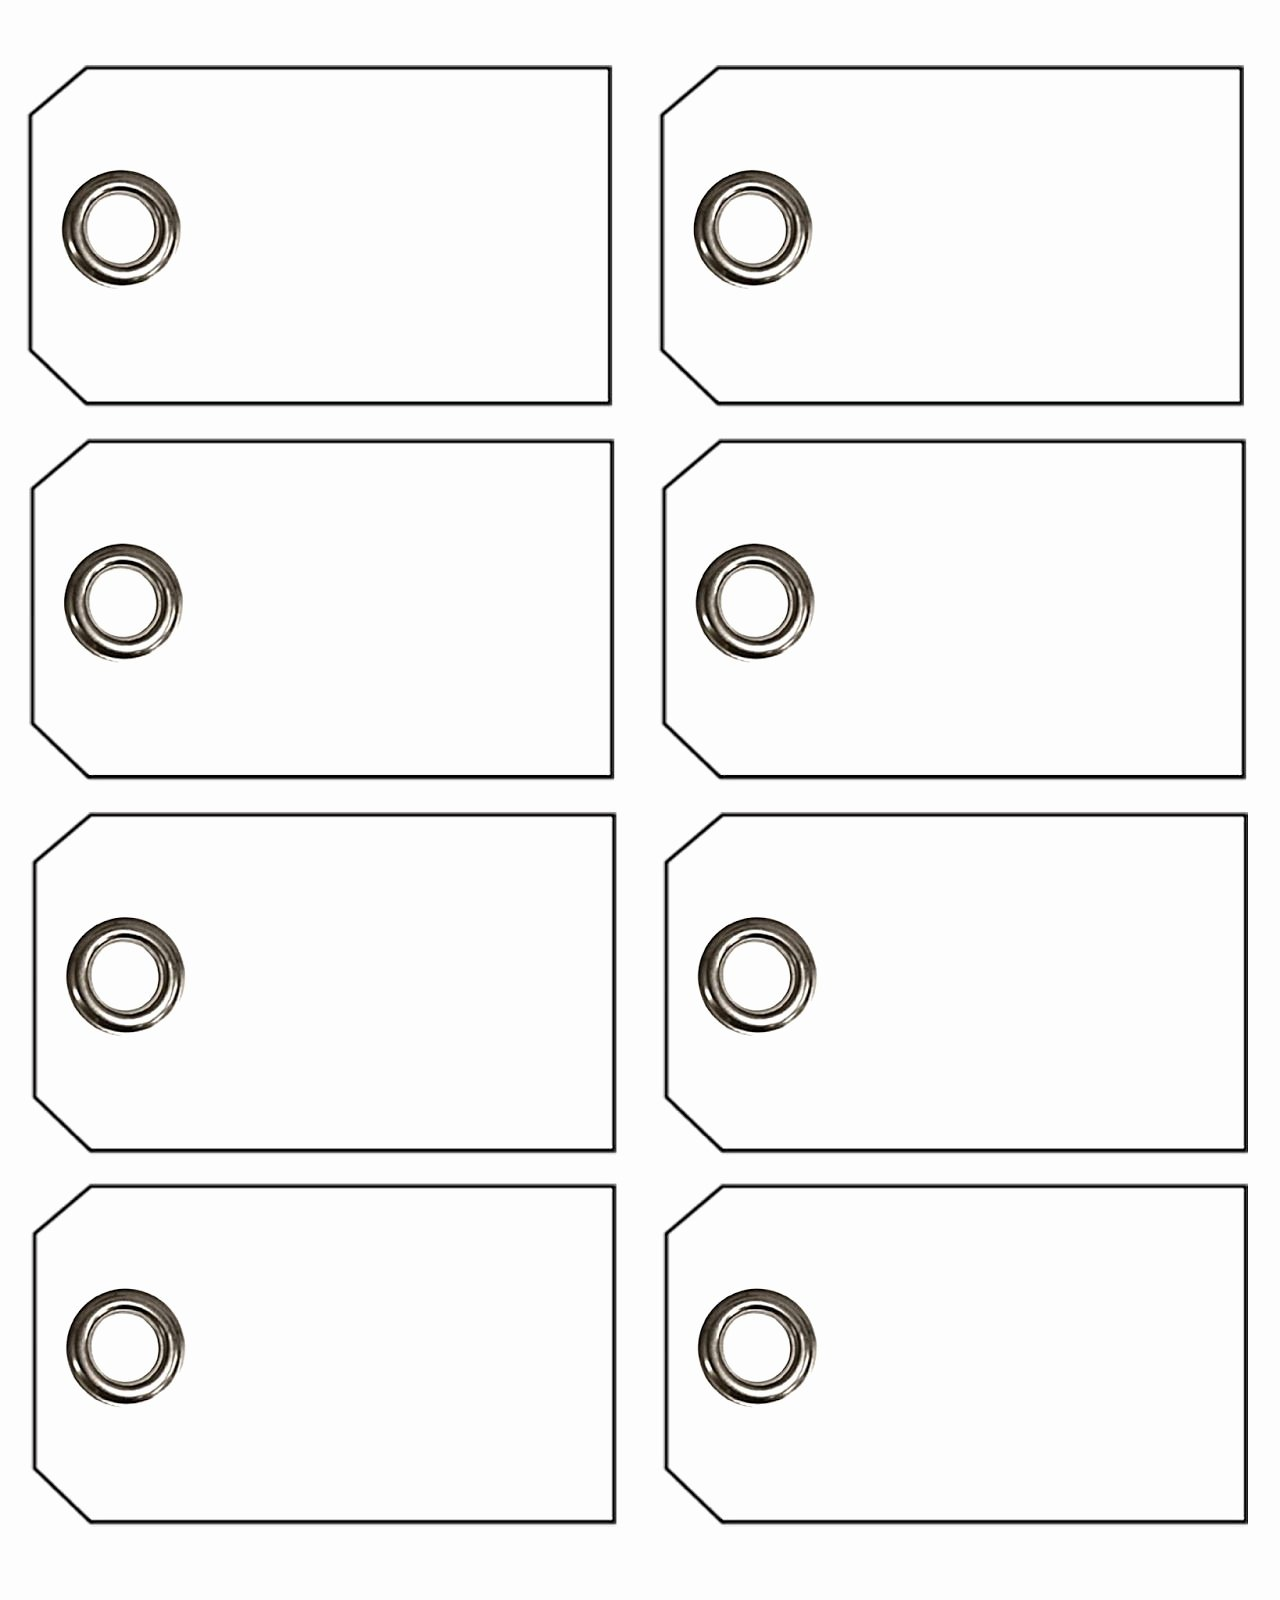 Free Price Tag Template Elegant Blank Price Tags Printable Gift Tags with Eyelets S3rfbuxr